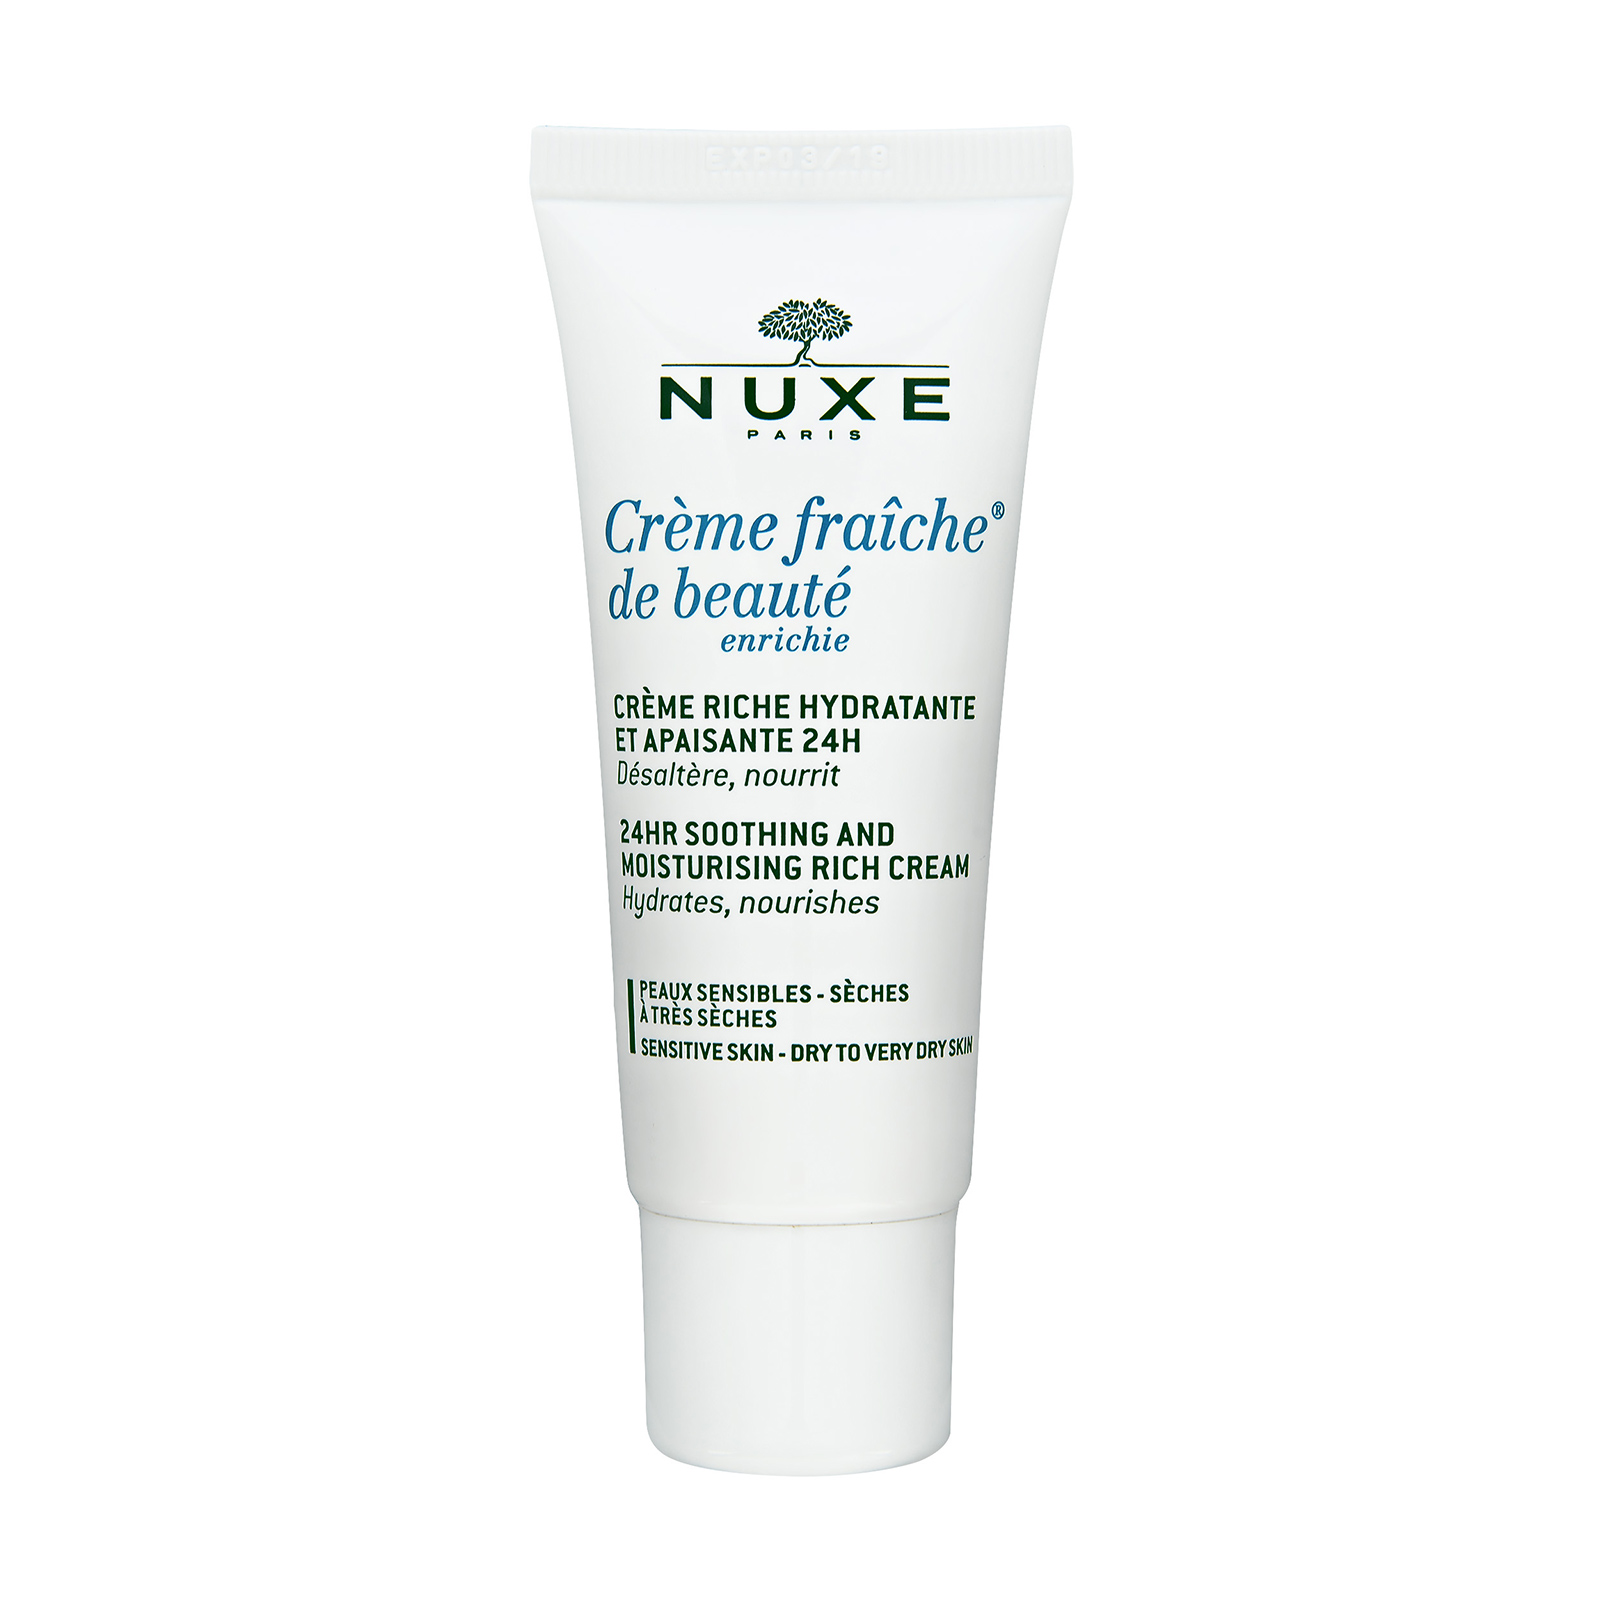 NUXE 24HR Soothing and Moisturizing Rich Cream 1oz, 30ml